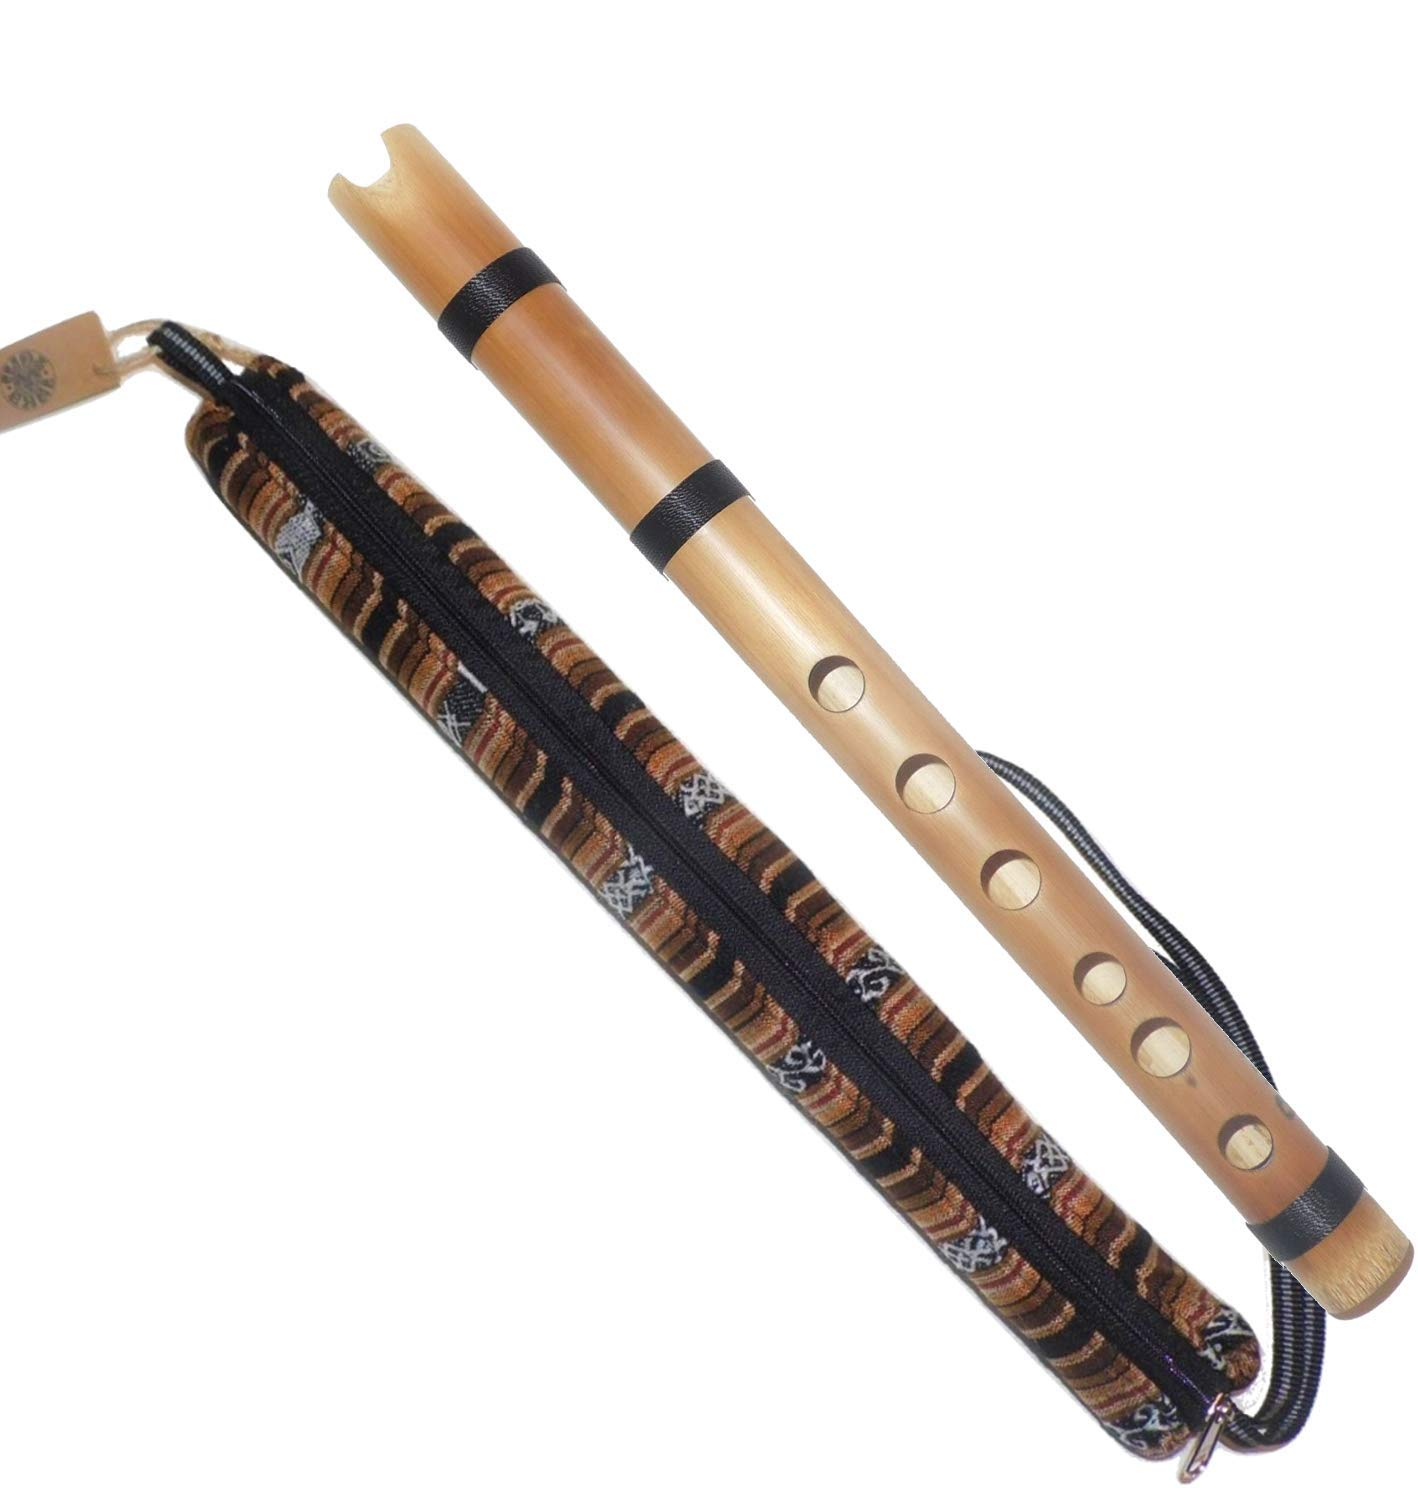 Peruvian Bamboo Quena Flute - Case & Cleaning Swab Included by Ramos